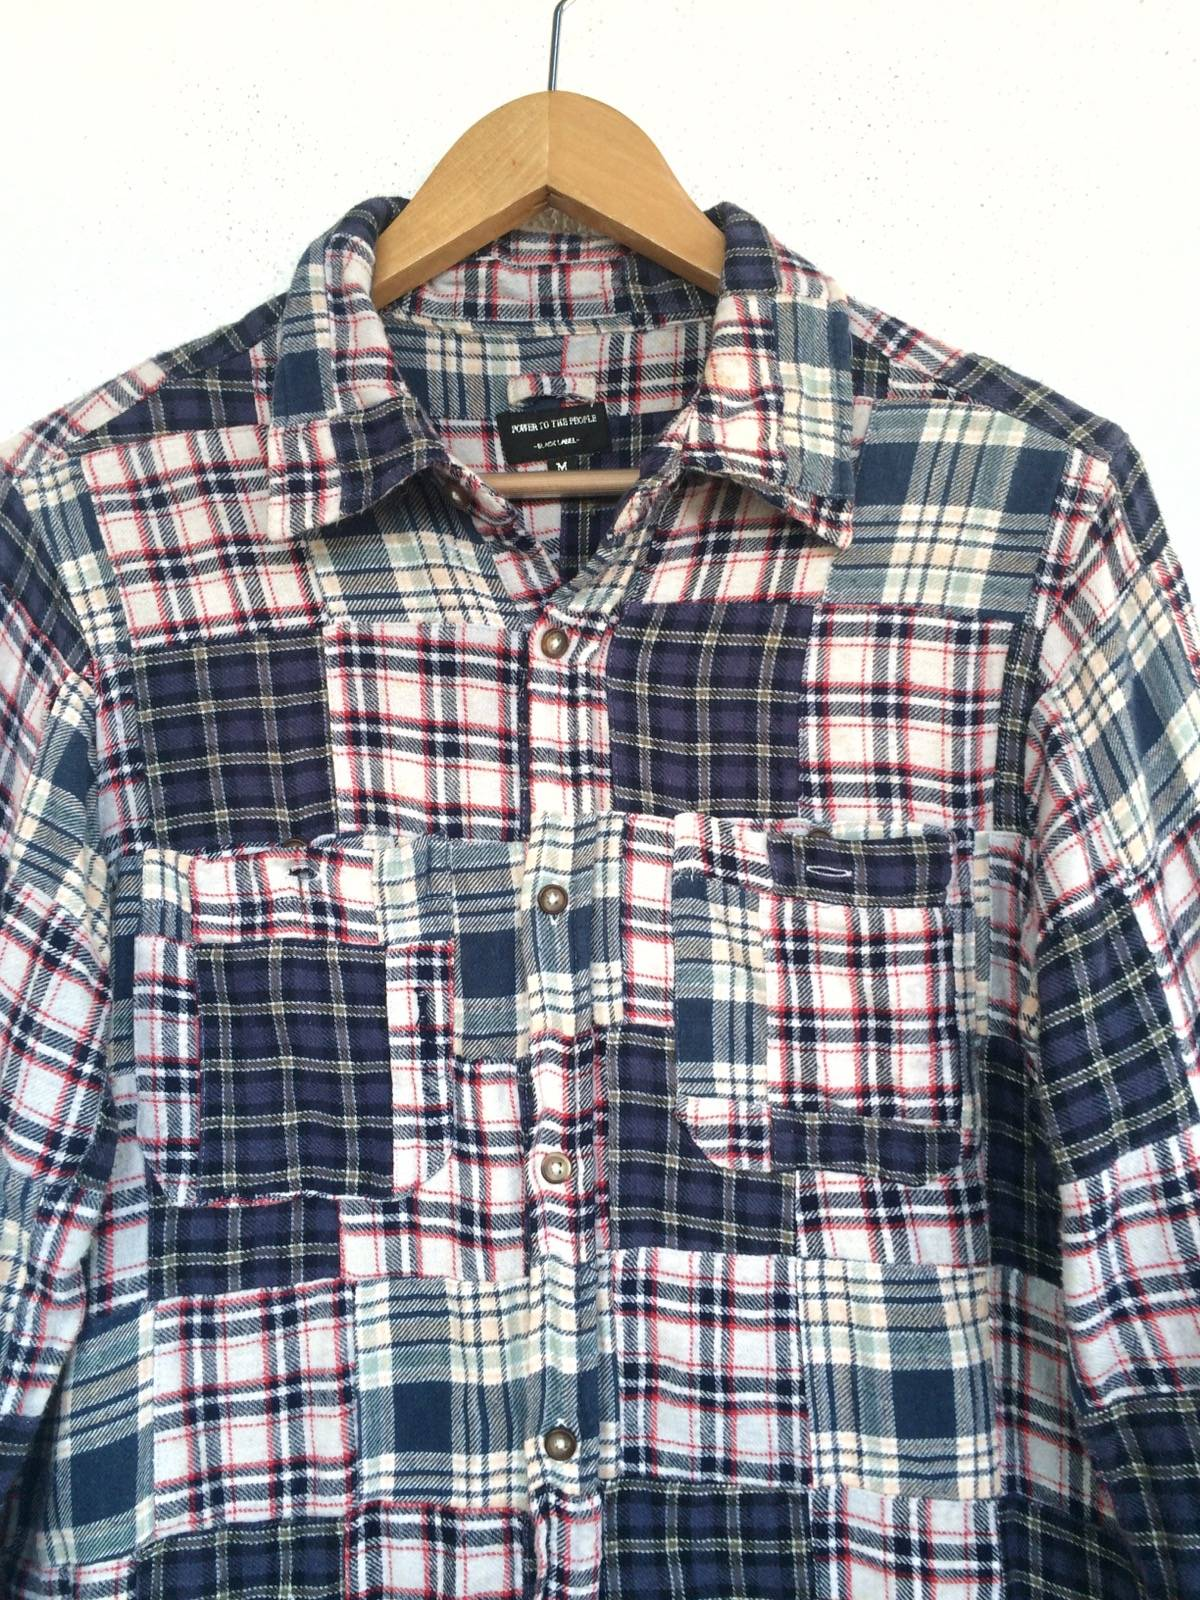 Power To The People Shirt Mens Size M Power To The People Japan Patchwork Shirt Japanese Plaid Checkered Patchwork Button Up